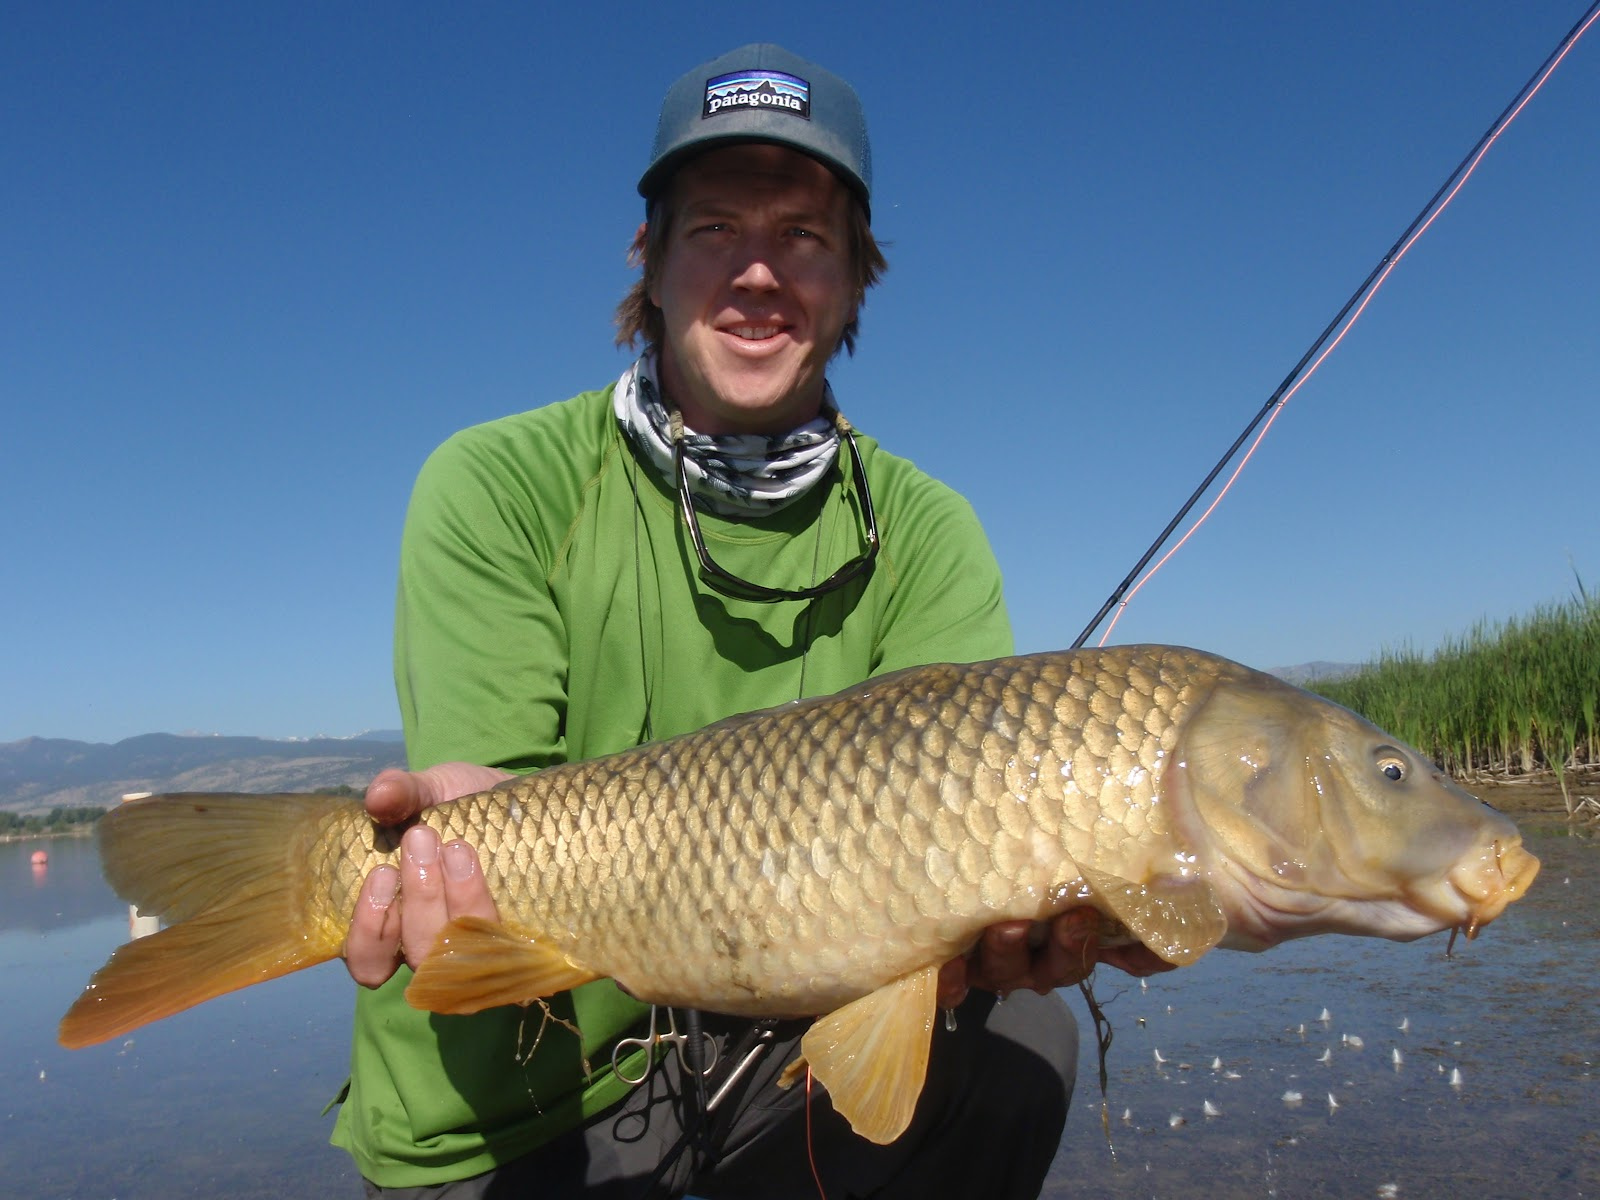 Colorado fly fishing reports bona fide the carp fishing for Fly fishing carp